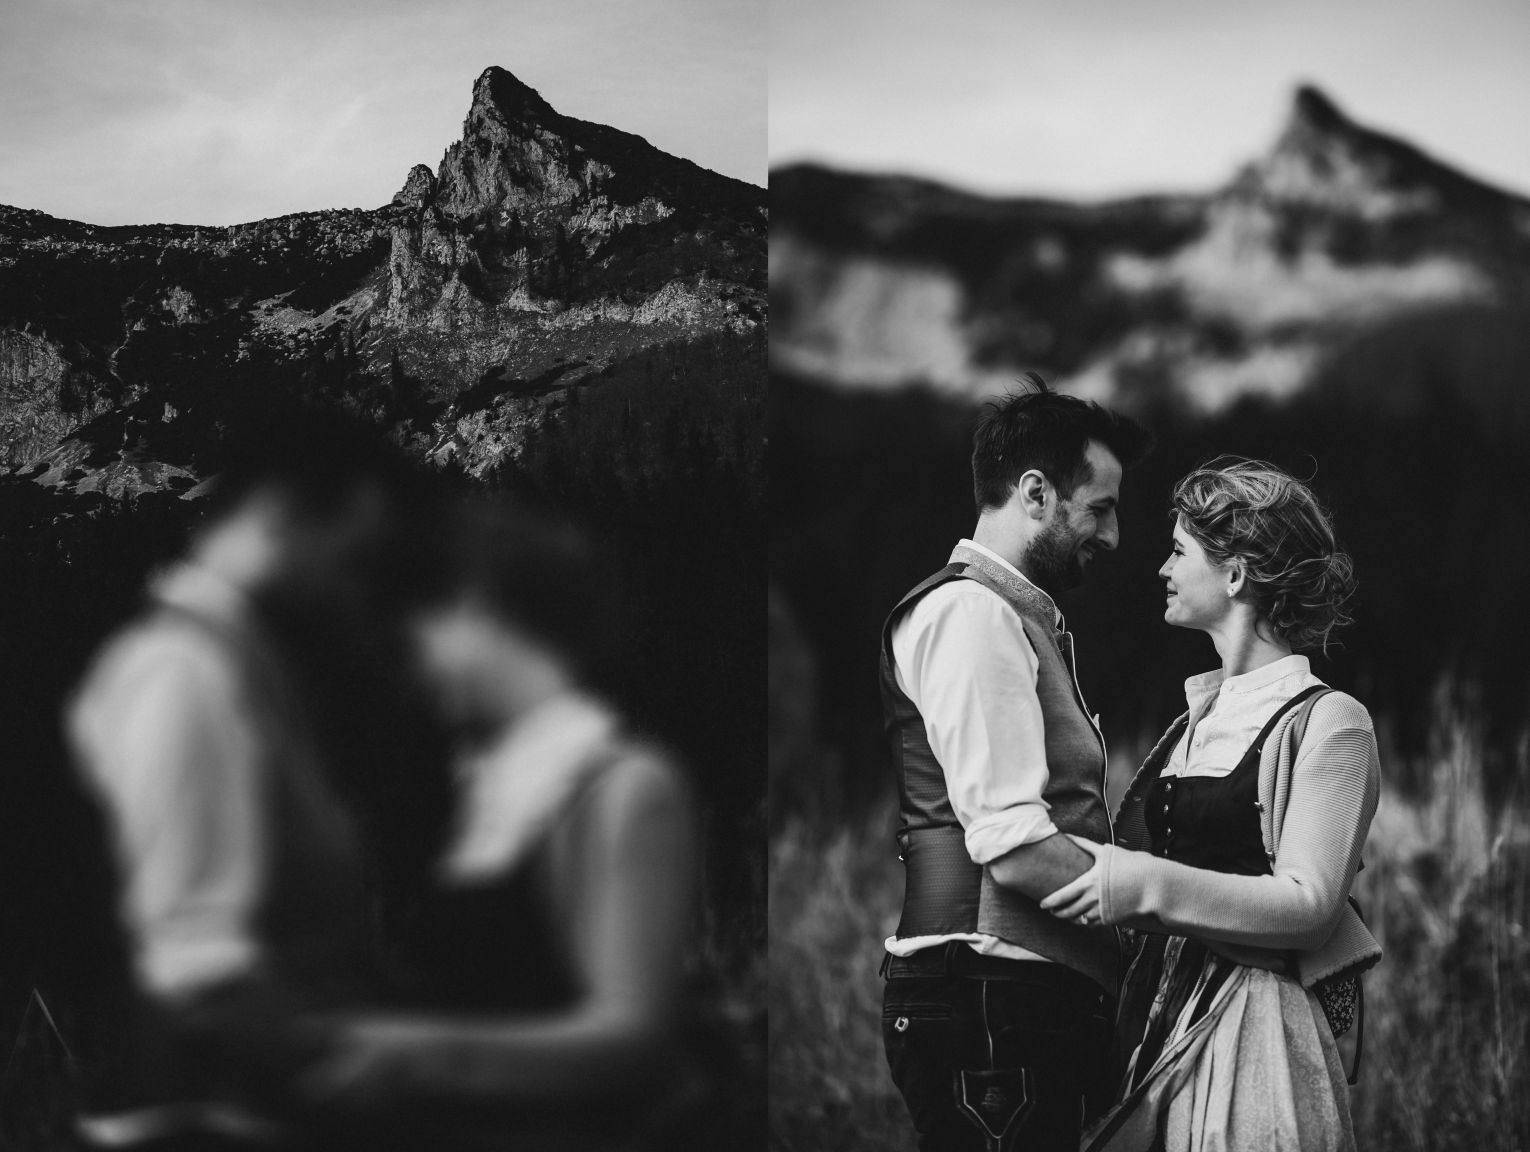 Lotte-Barry-photosession-in-Mountain-3